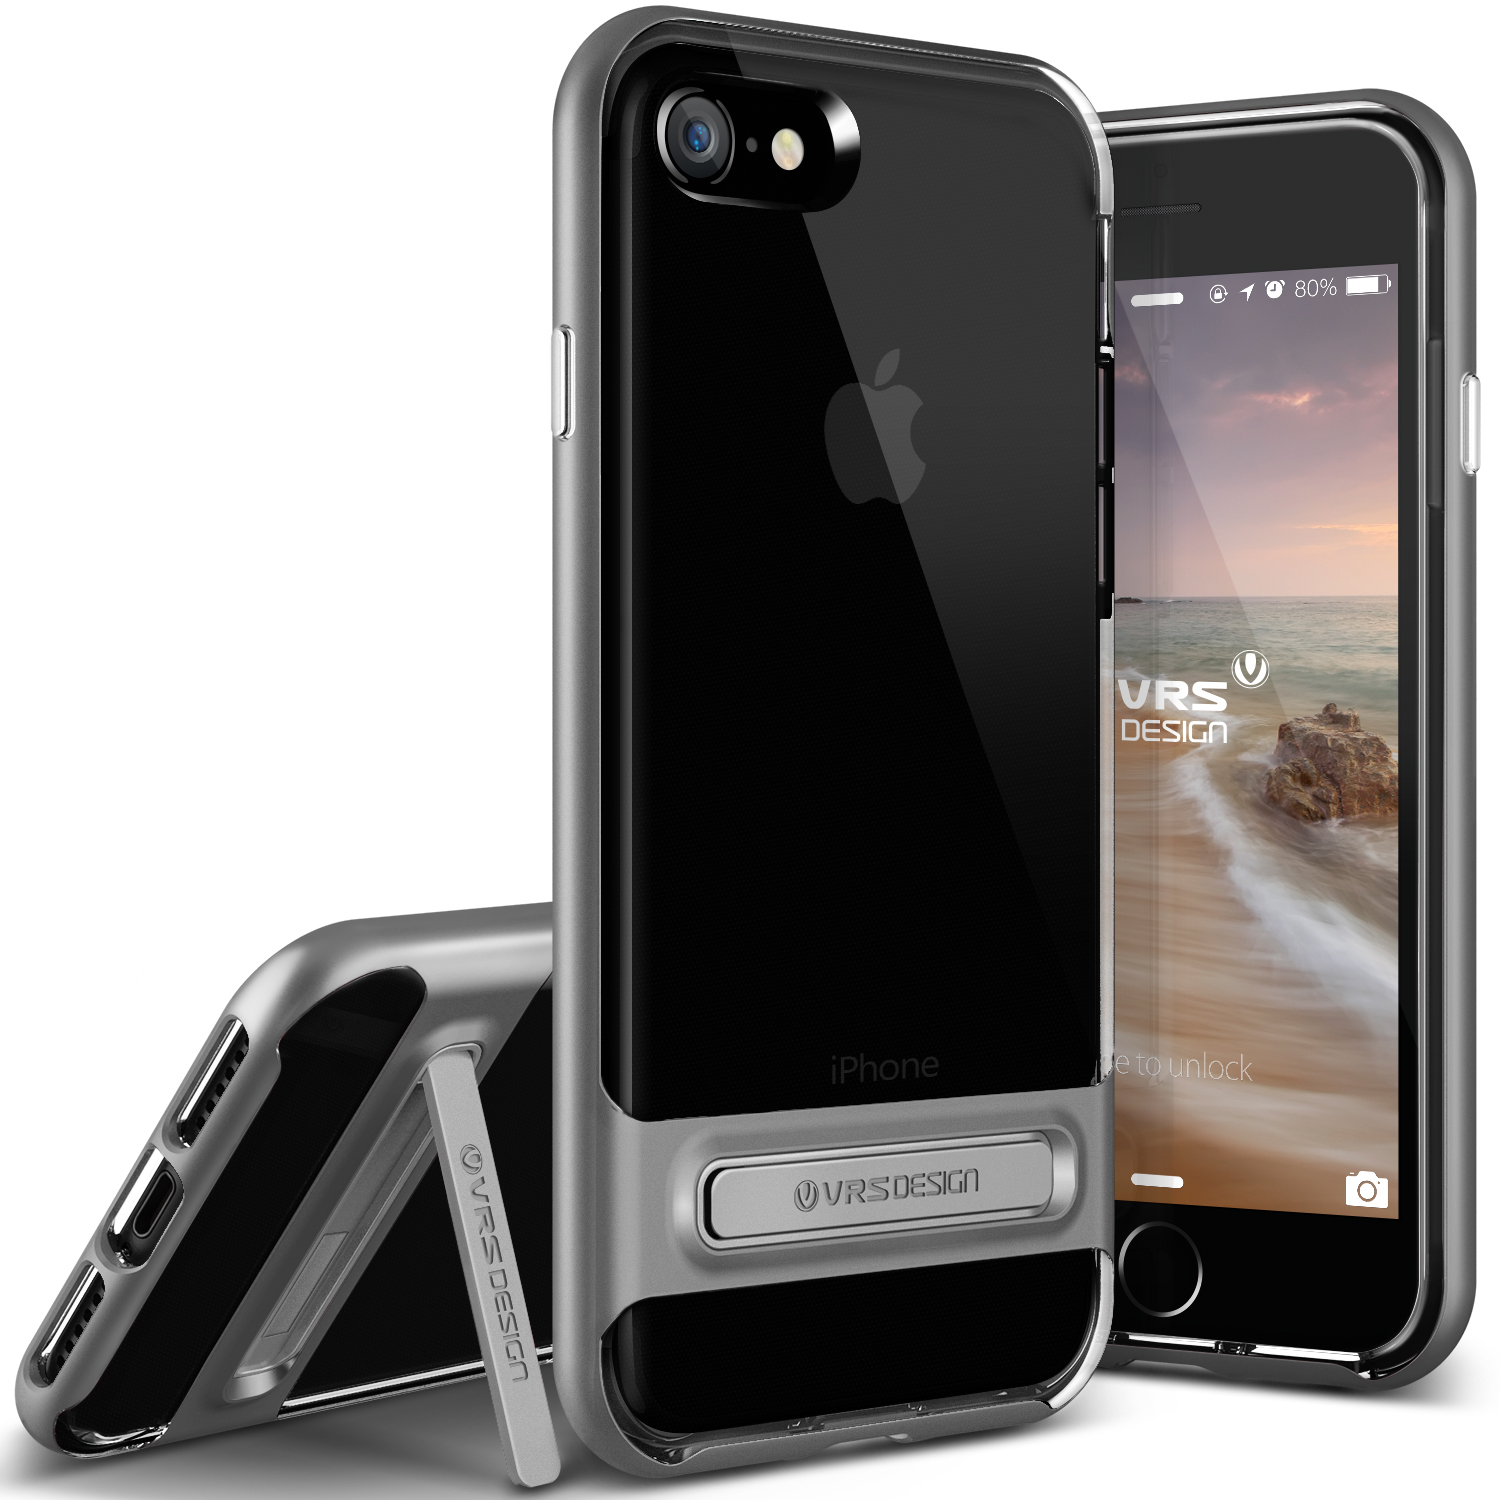 iPhone 7 Case Cover | Clear TPU with Rugged Protection | VRS Design Crystal Bumper for Apple iPhone 7